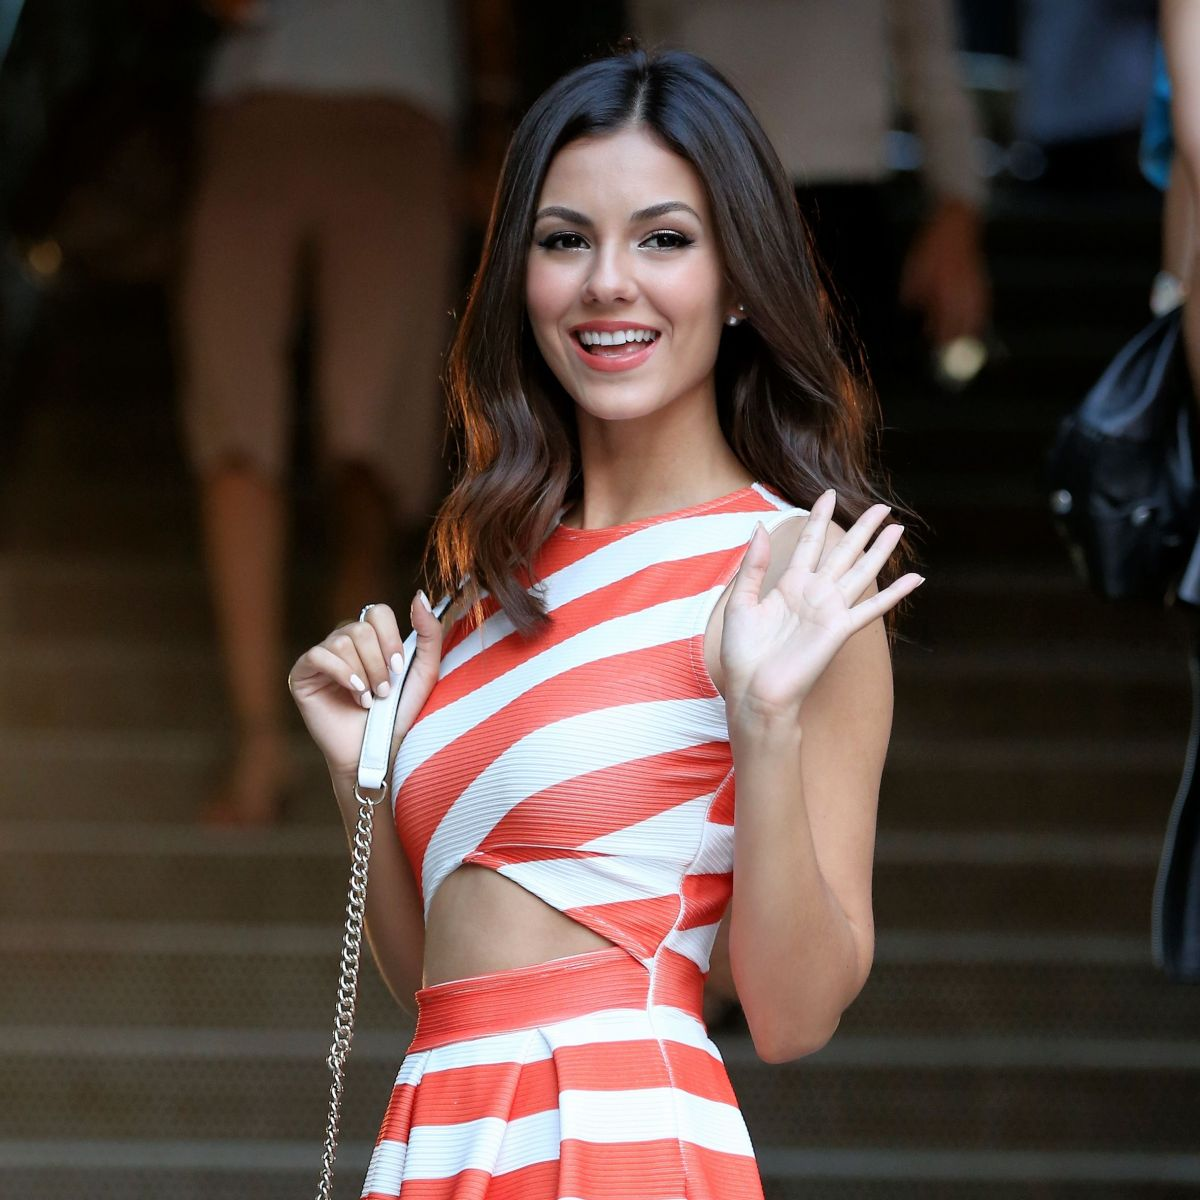 Free Victoria Justice Mobile Hd Download Showing Tata Pose Pictures